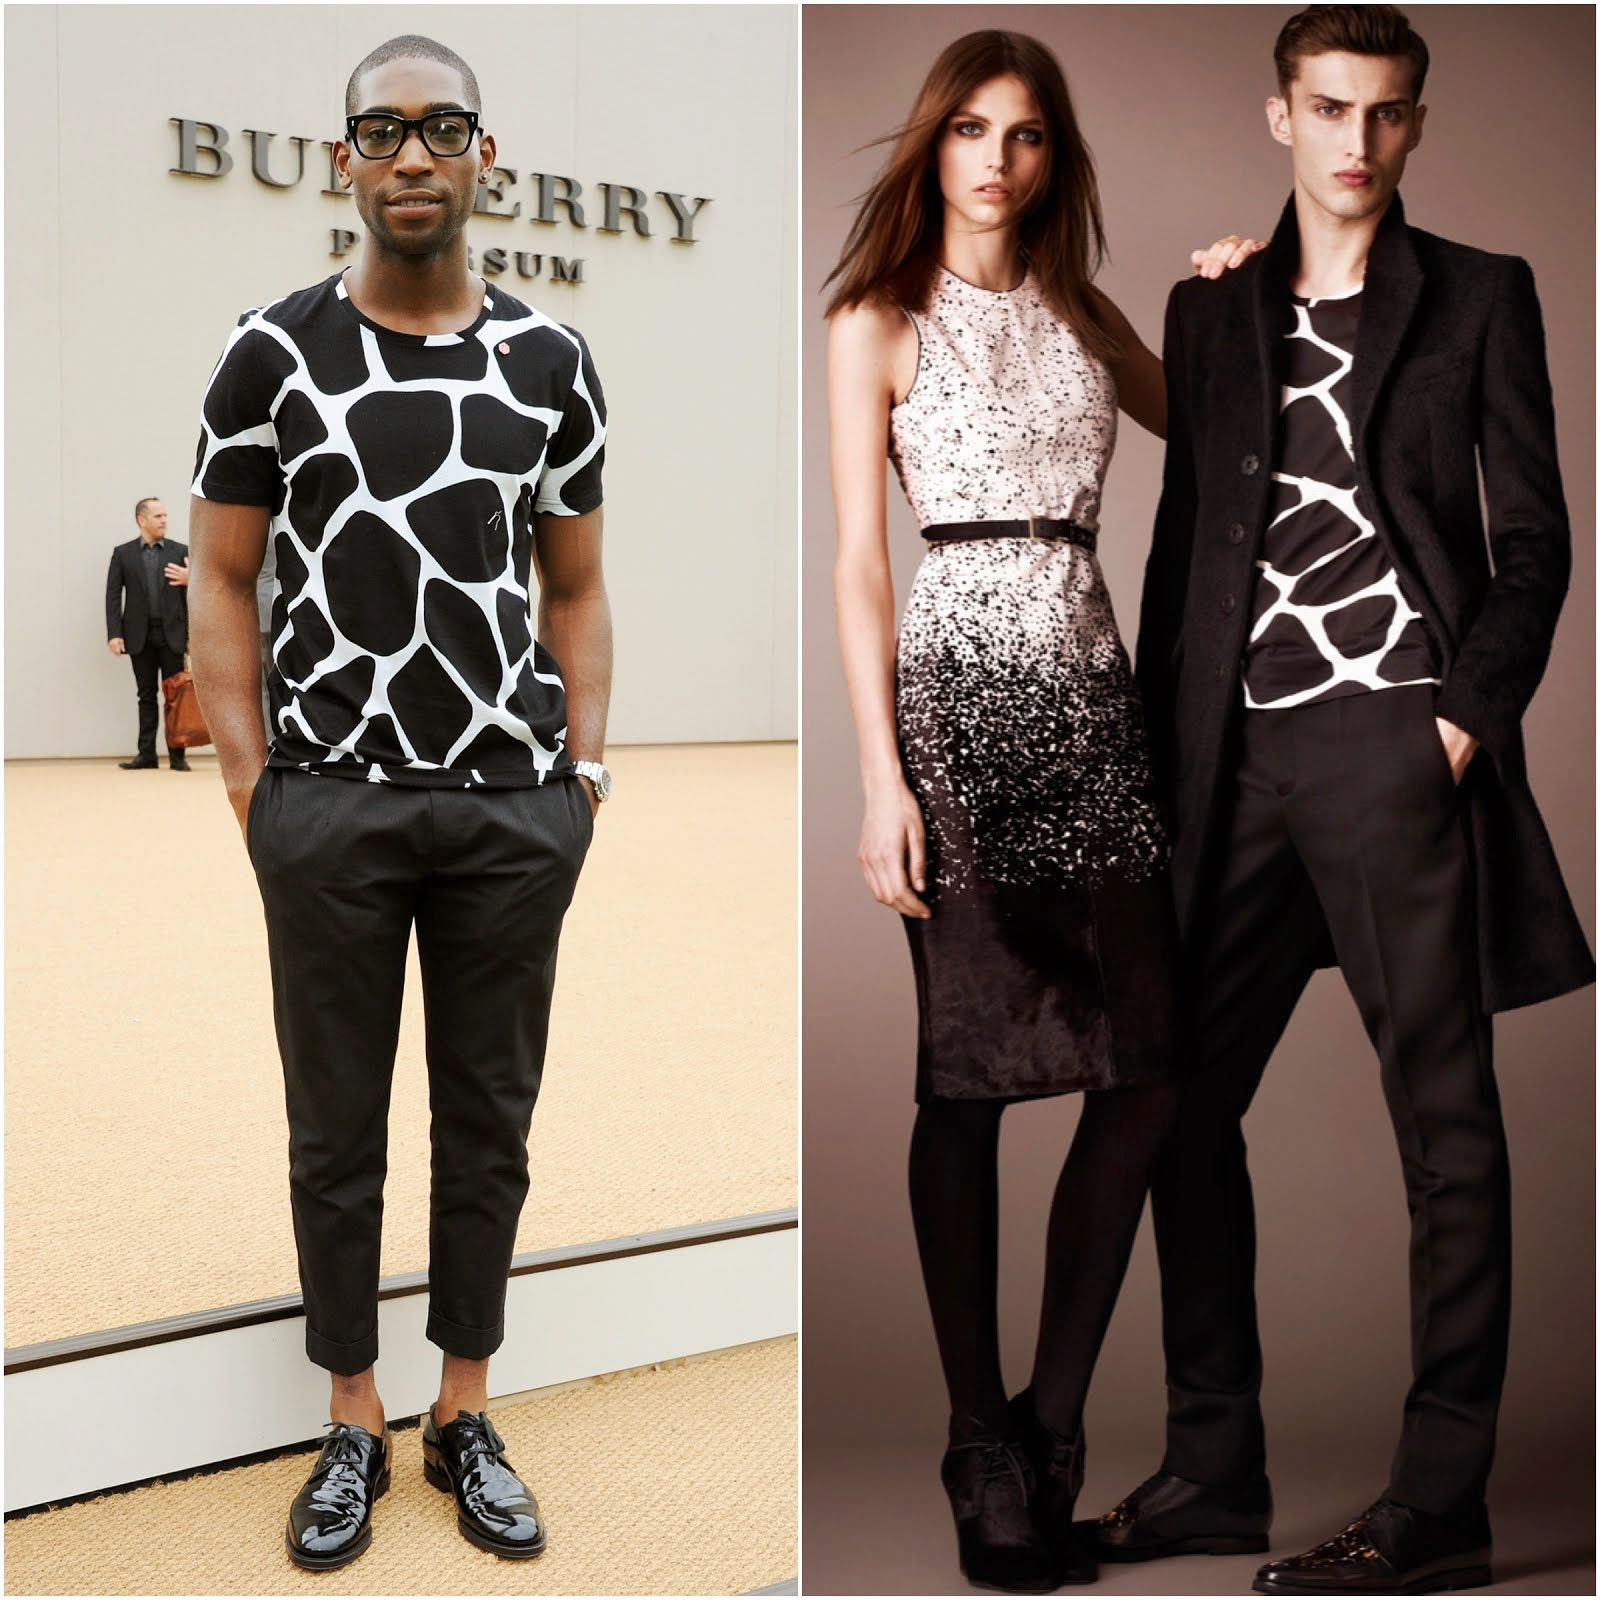 00O00 Menswear Blog: Tinie Tempah in Burberry Prorsum - Burberry Prorsum Menswear SS14 Show, London